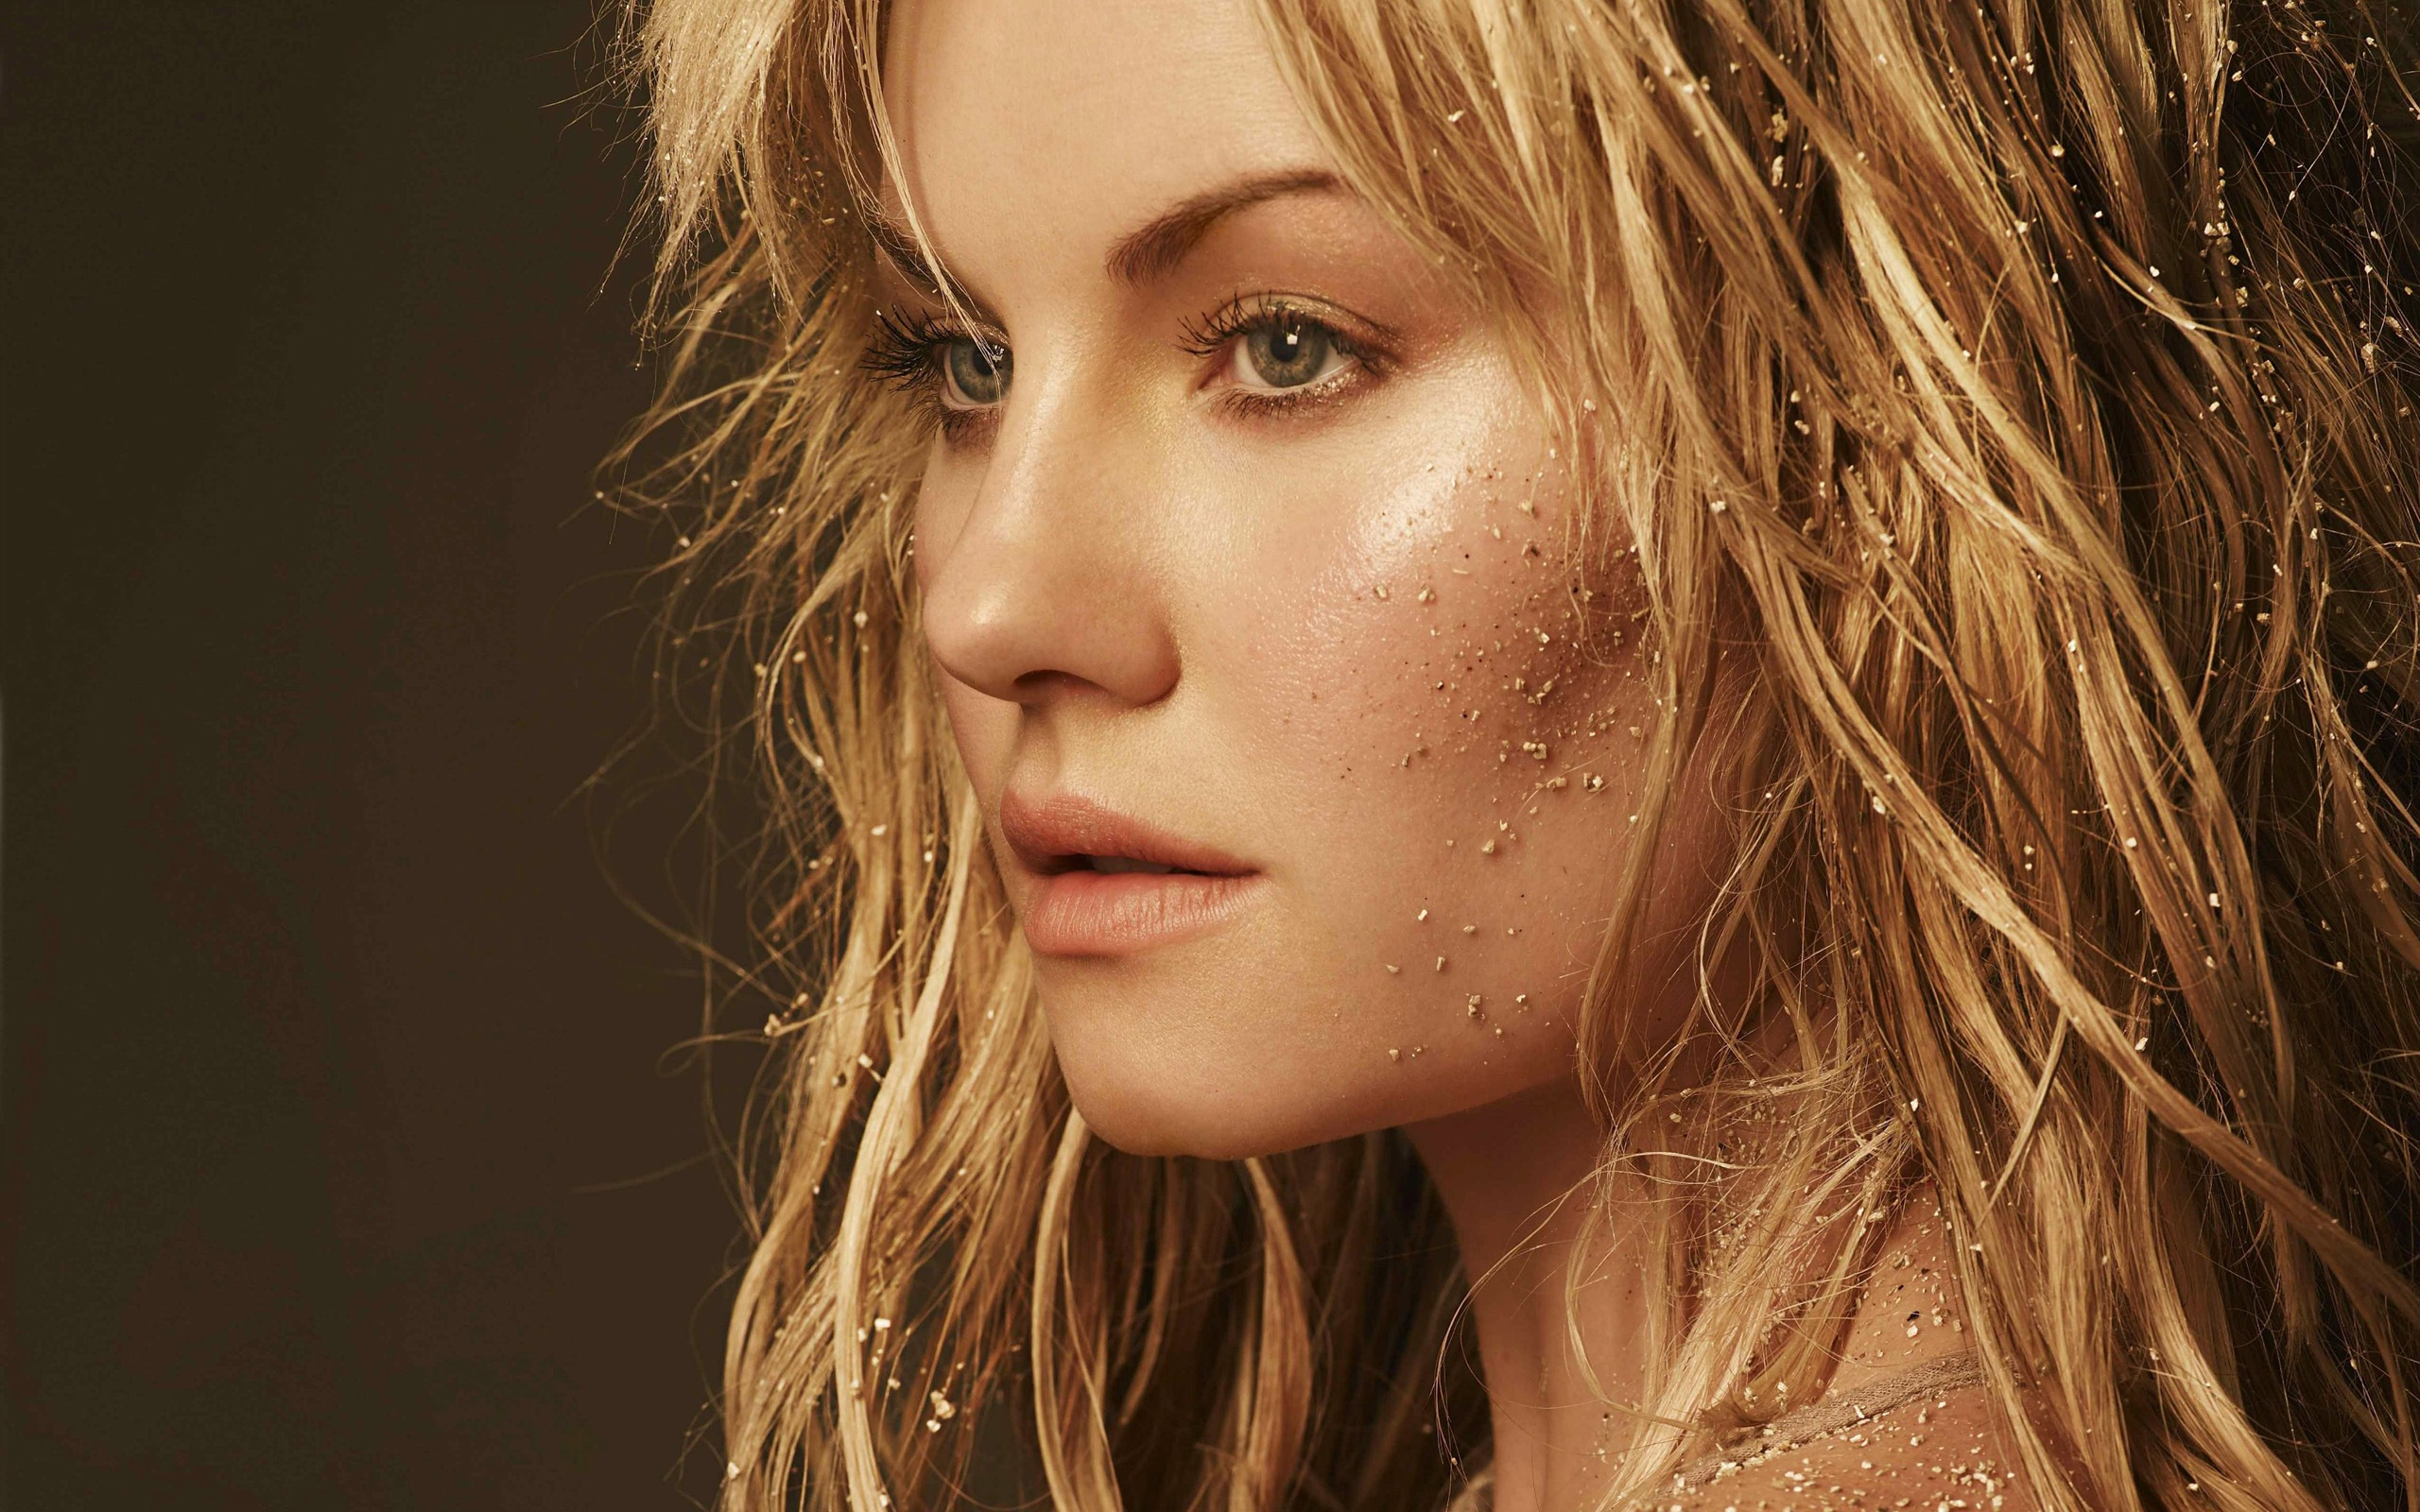 Elisha Cuthbert Hd Wallpapers: Elisha Cuthbert HD Wallpaper